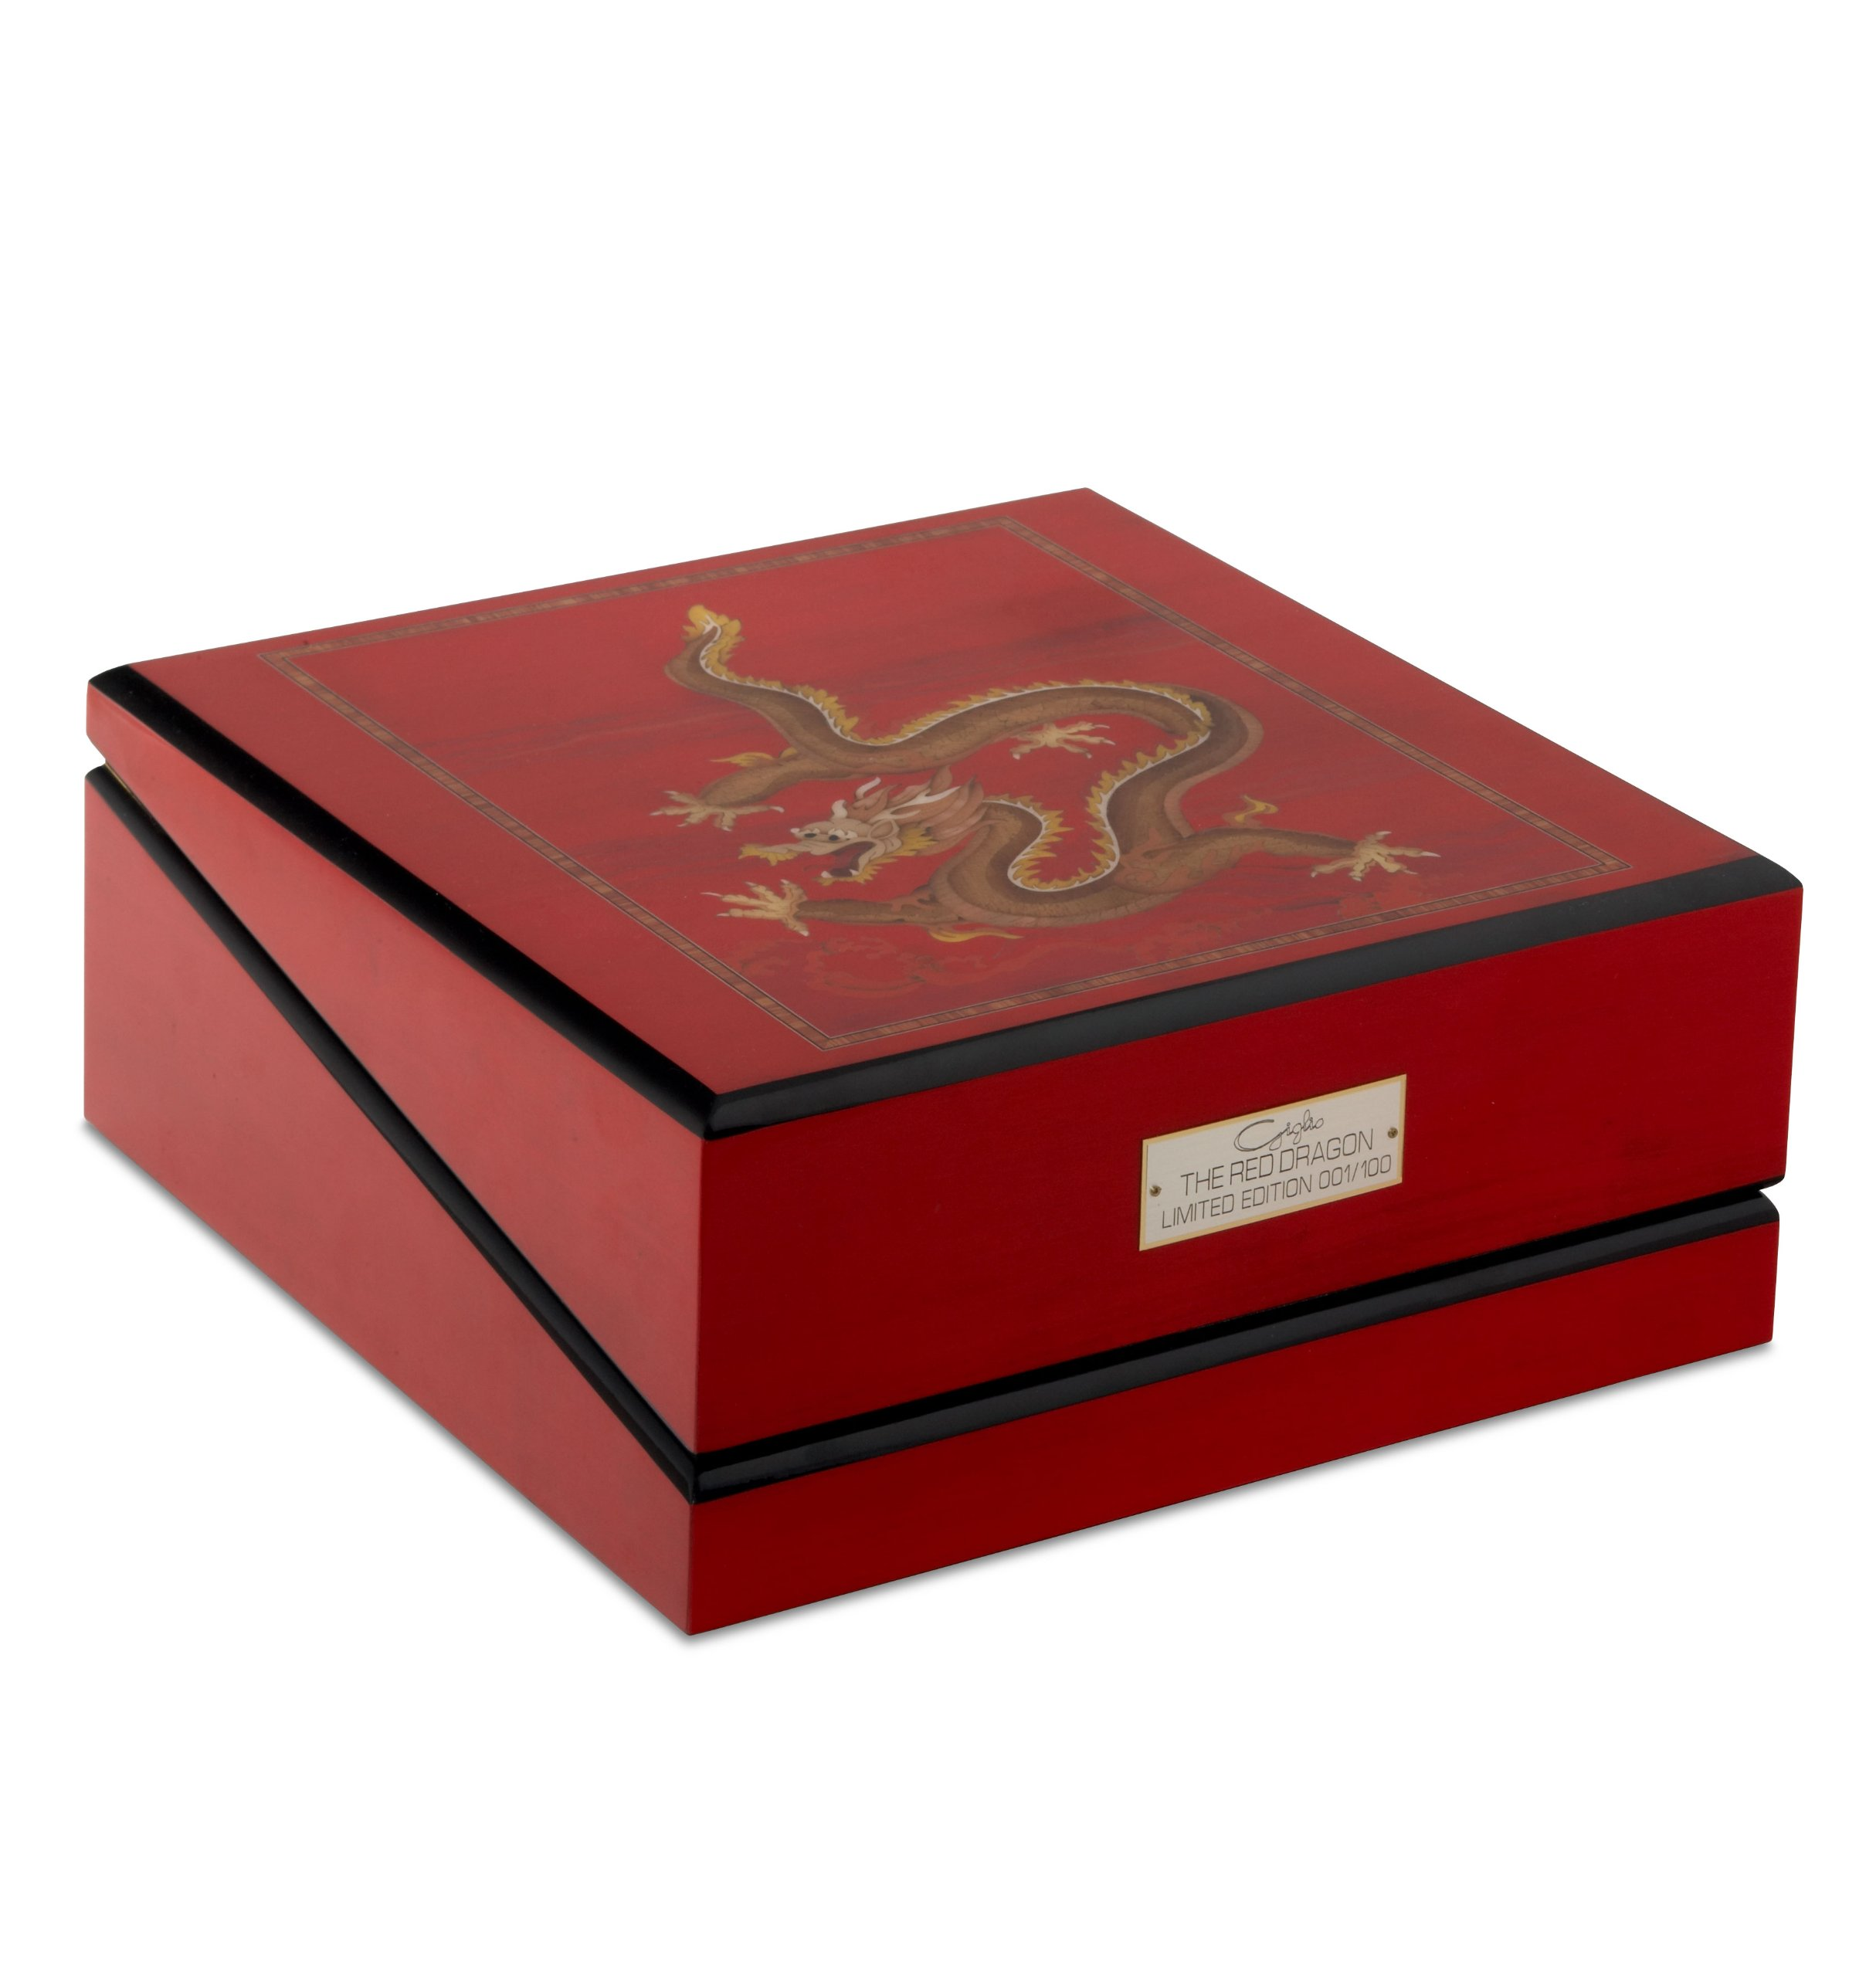 Giglio Red Dragon 3 Programmable Watch Winder With Numbered Plaque by Orbita